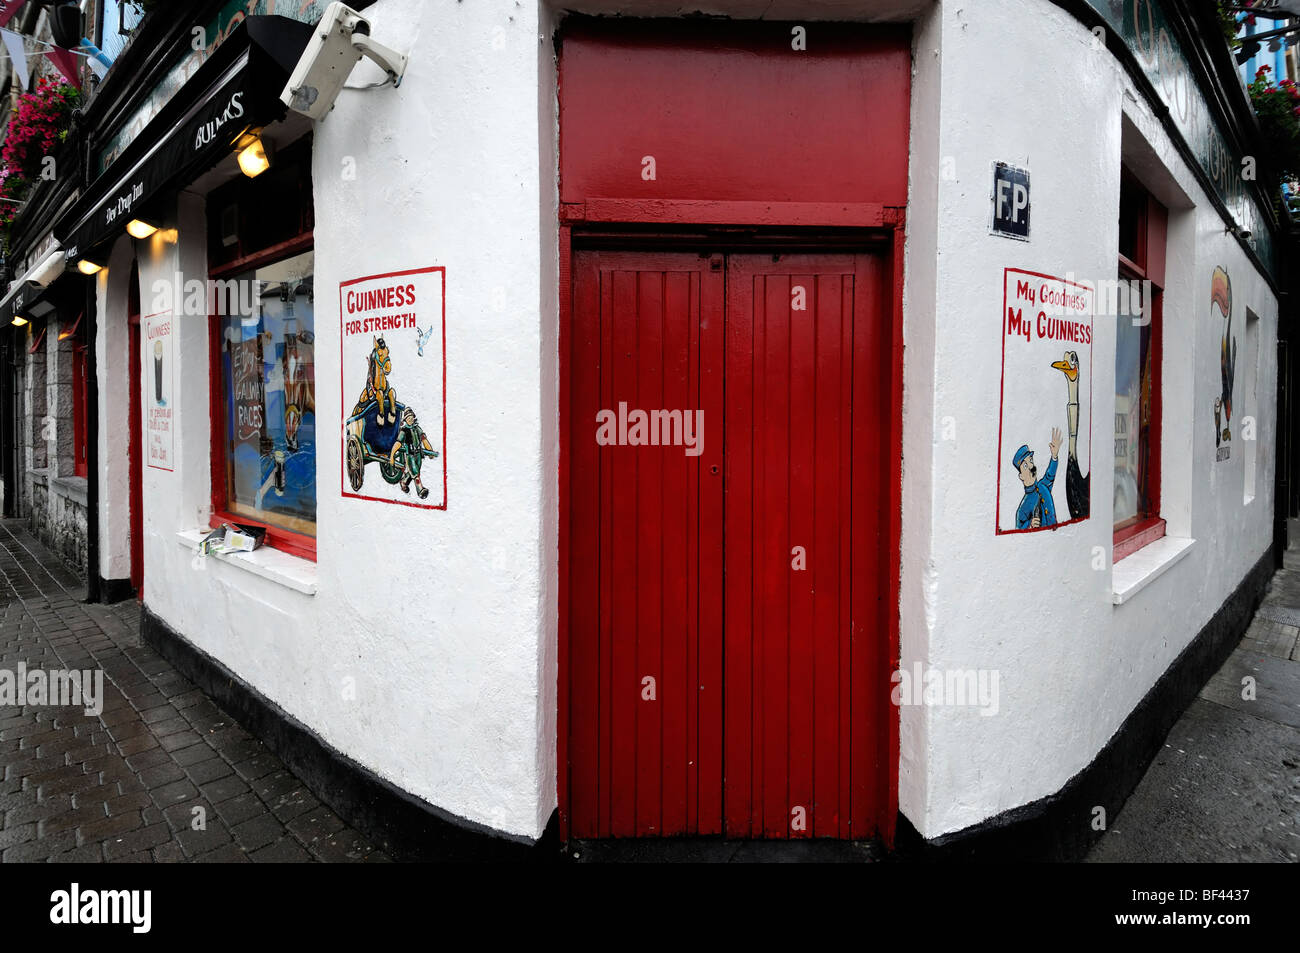 frontal front street frontage view the dewdrop inn bar pub licensed premises galway ireland red door closed shut - Stock Image